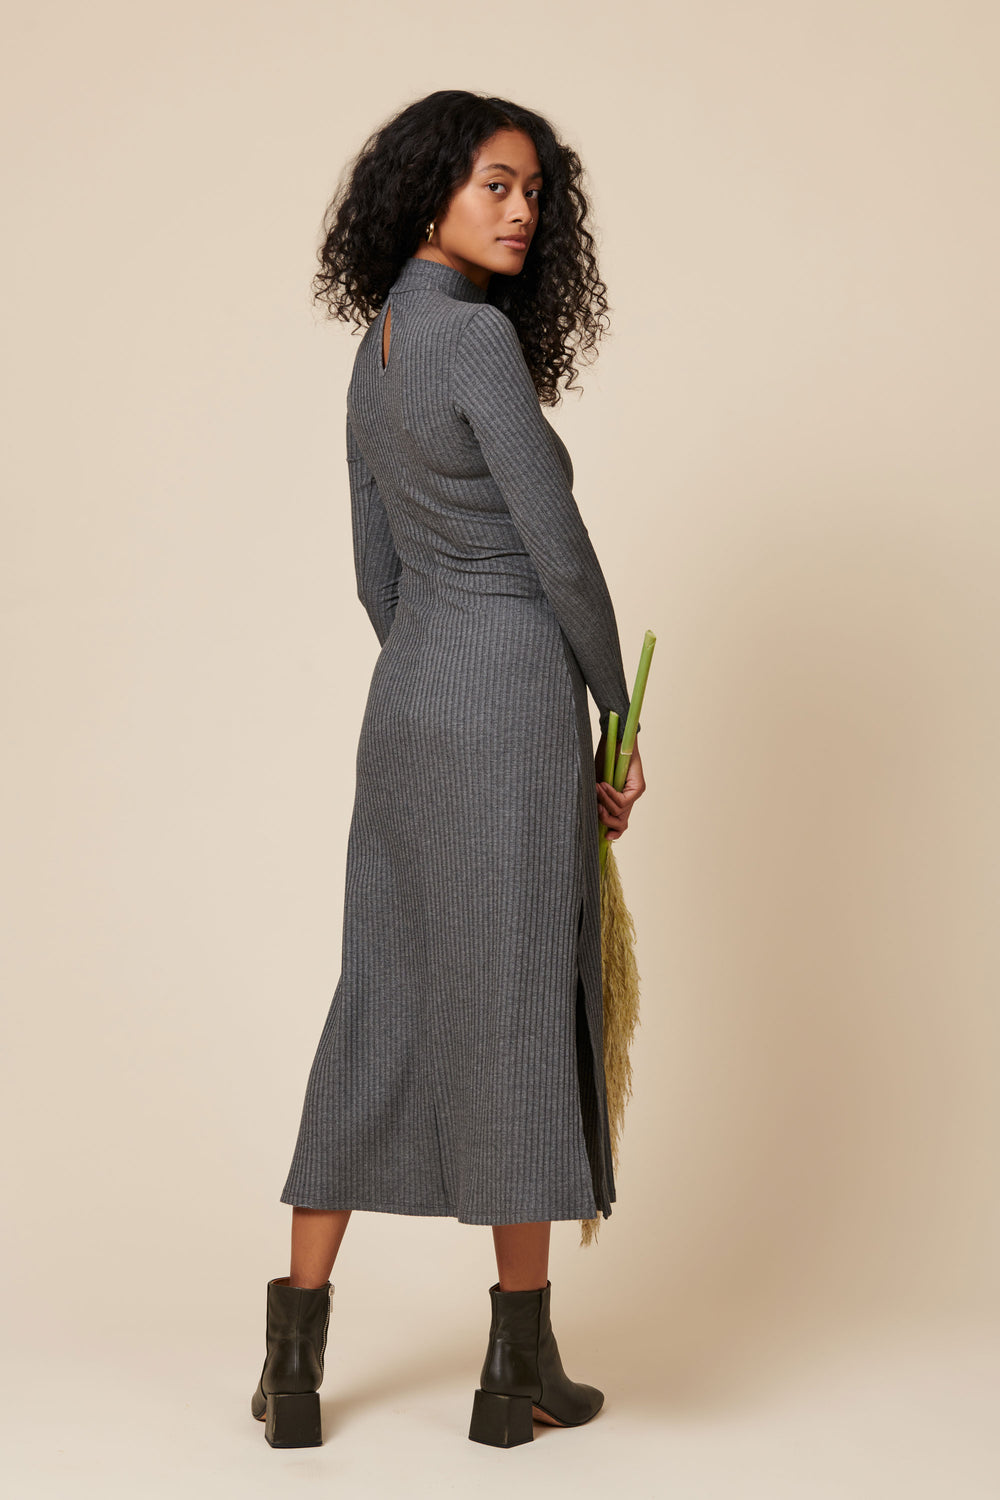 The Joan Dress in Grey - Whimsy & Row